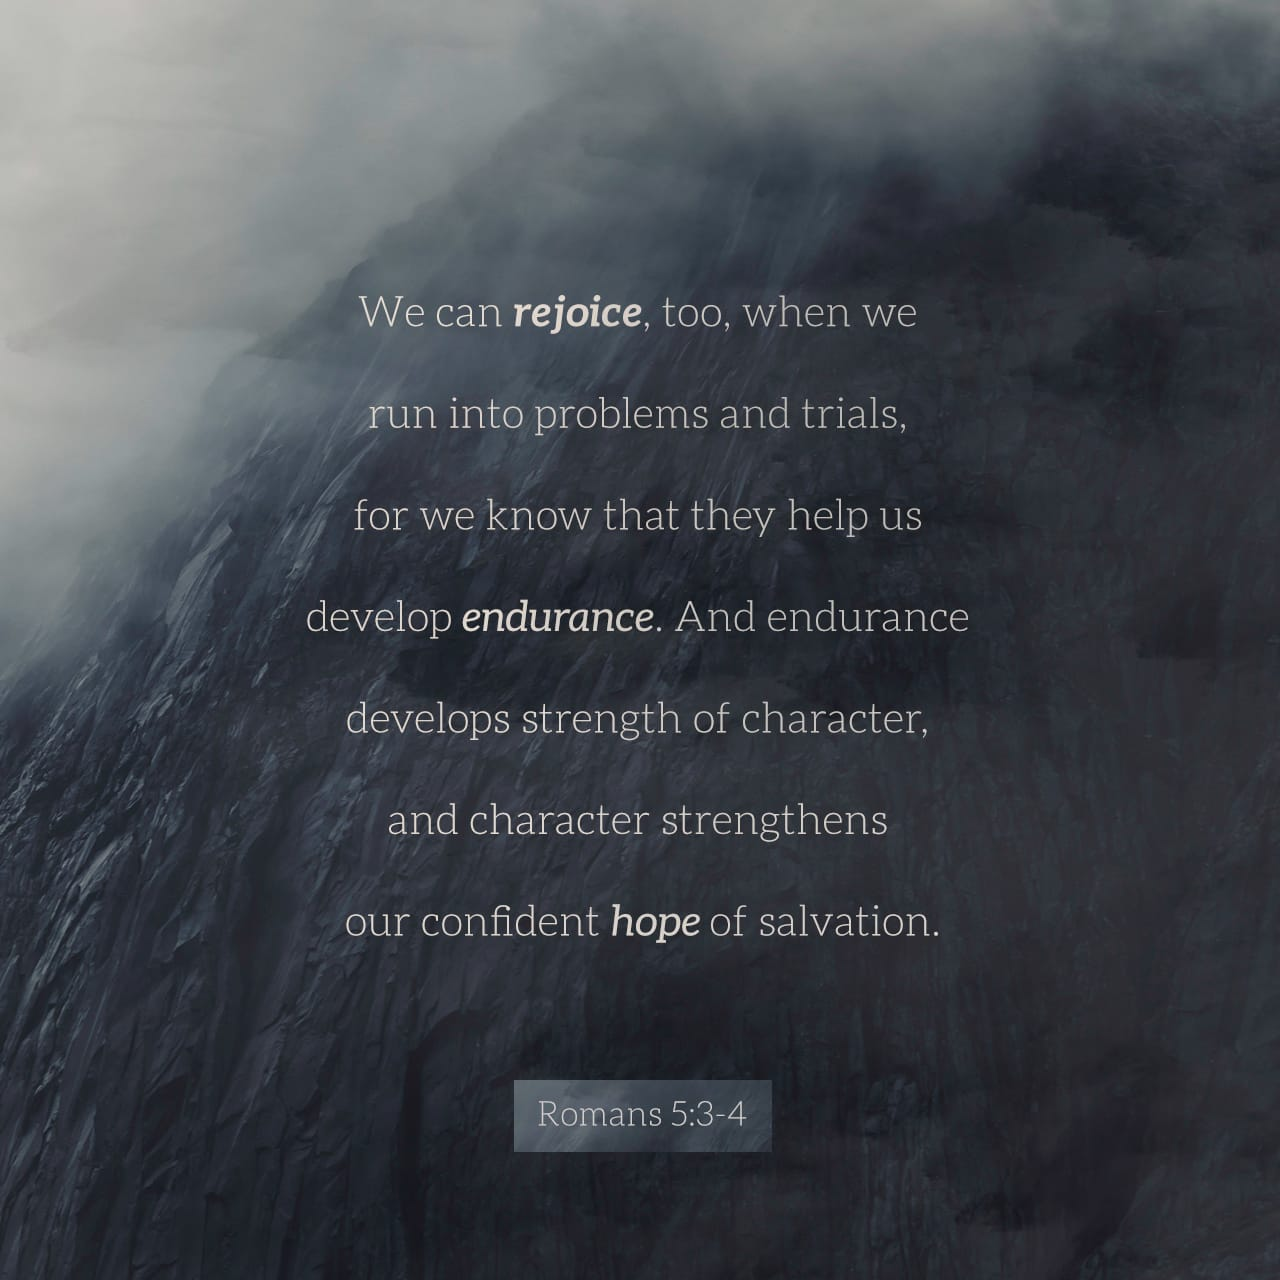 Bible Verse of the Day - day 173 - image 5759 (Romans 5:4)